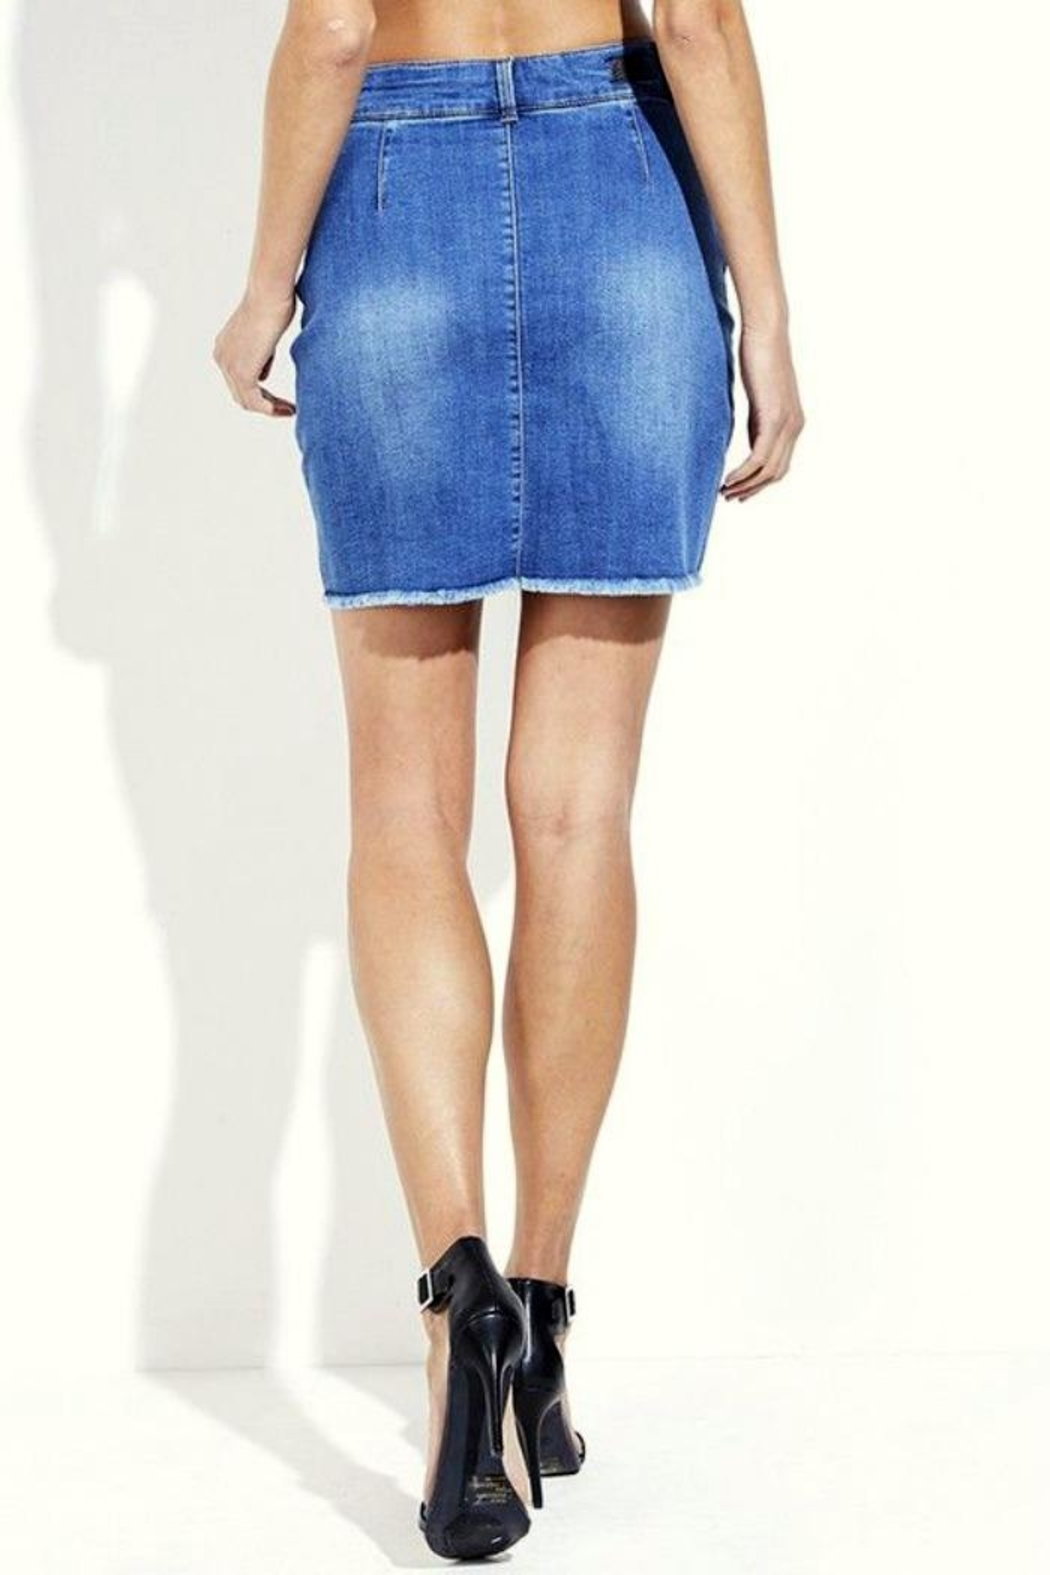 Simply Chic Lace Up Denim Skirt - Side Cropped Image